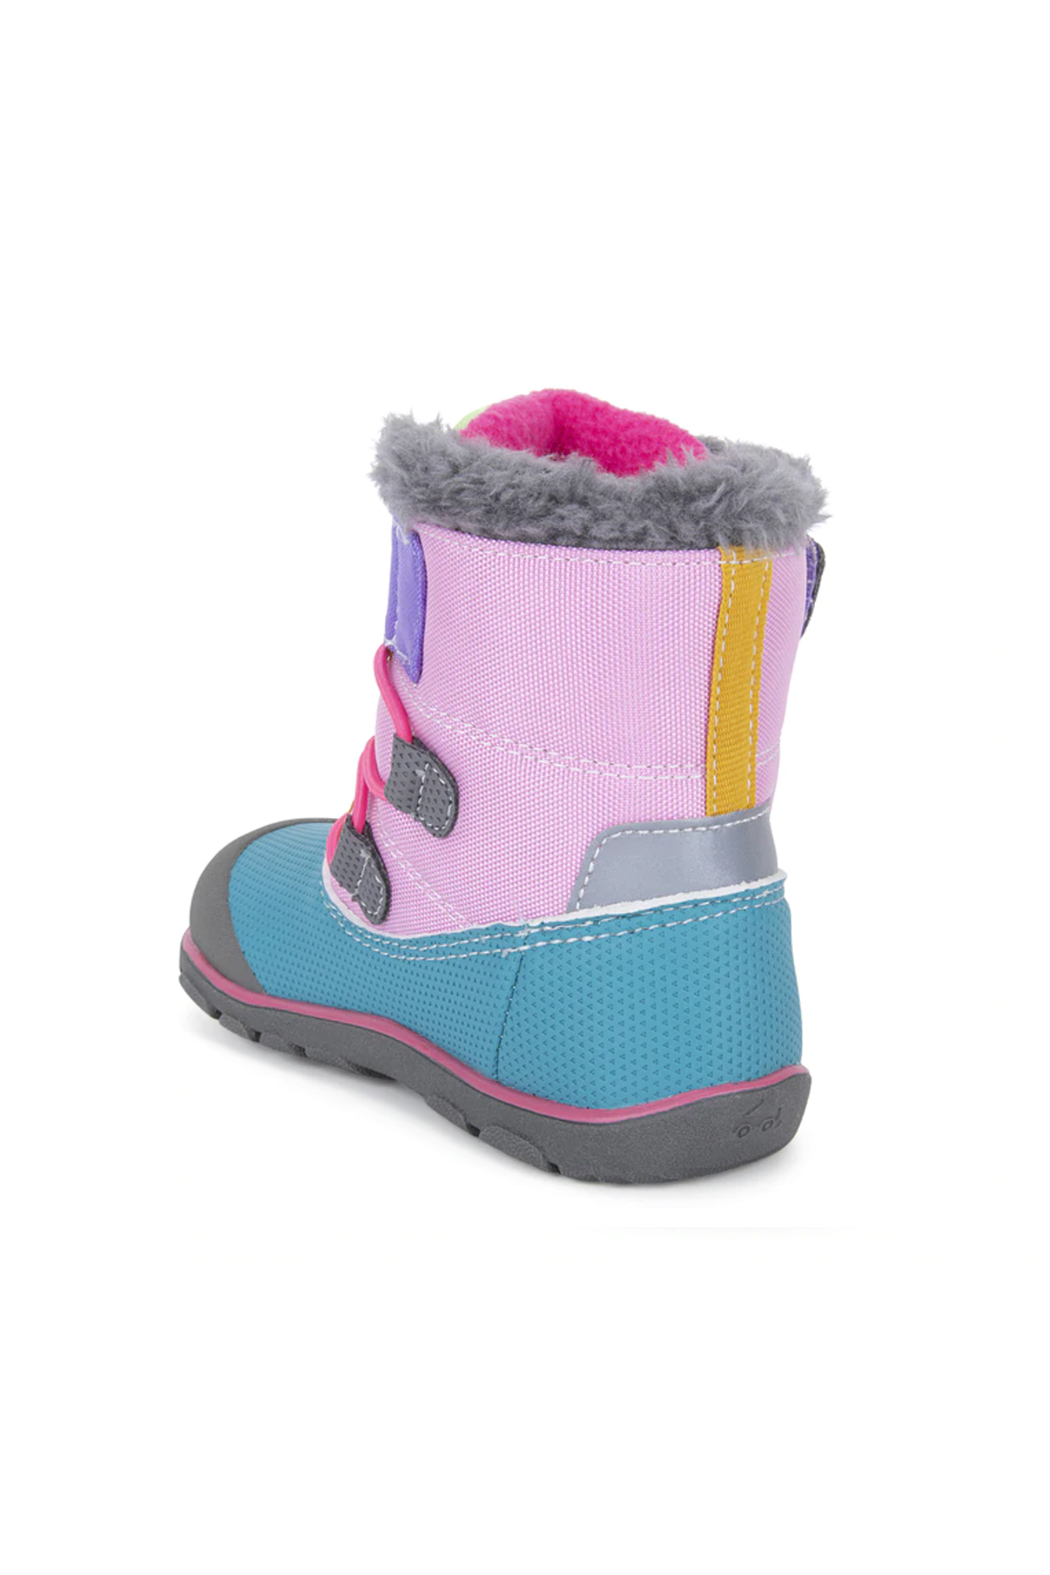 See Kai Run Gilman Waterproof Insulated Boot -  Pink/Teal - Front Full Image